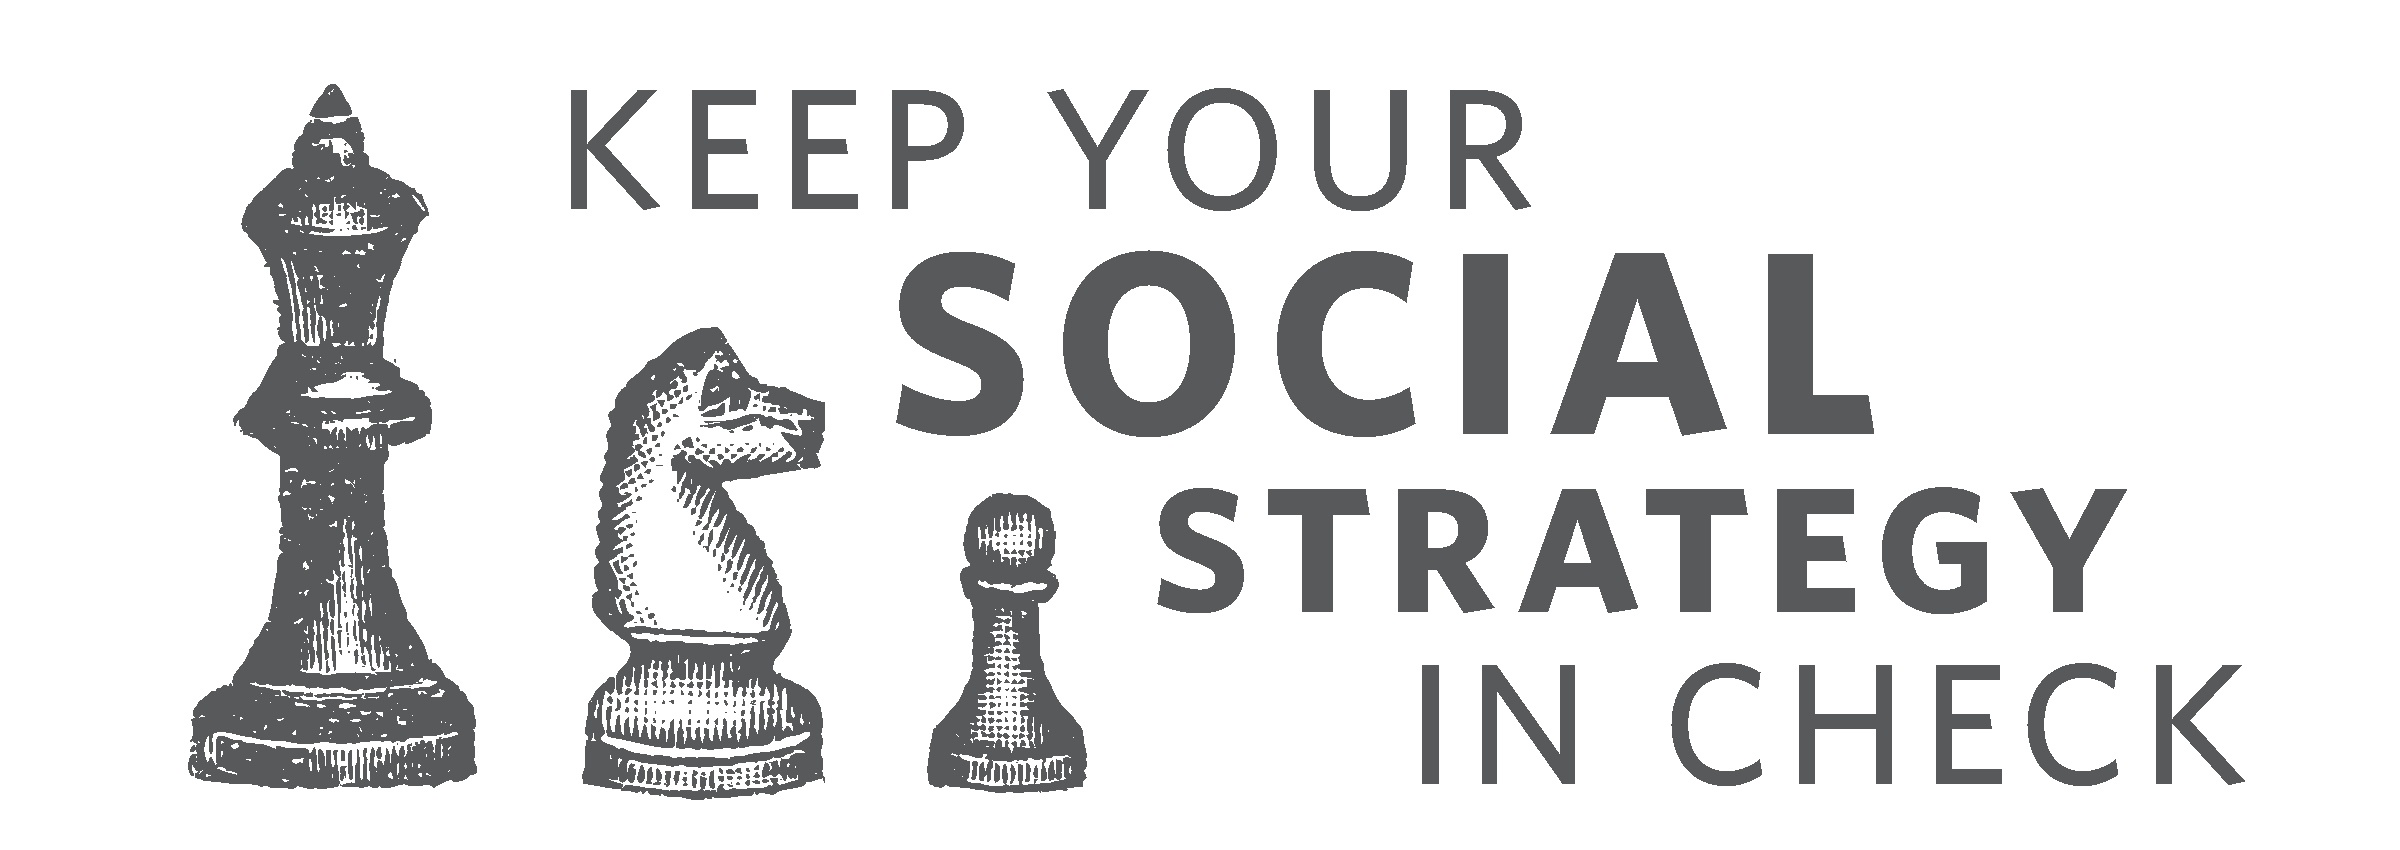 Keep Your Social Media Conversion Strategy In Check and Bring Shoppers to The Shelf